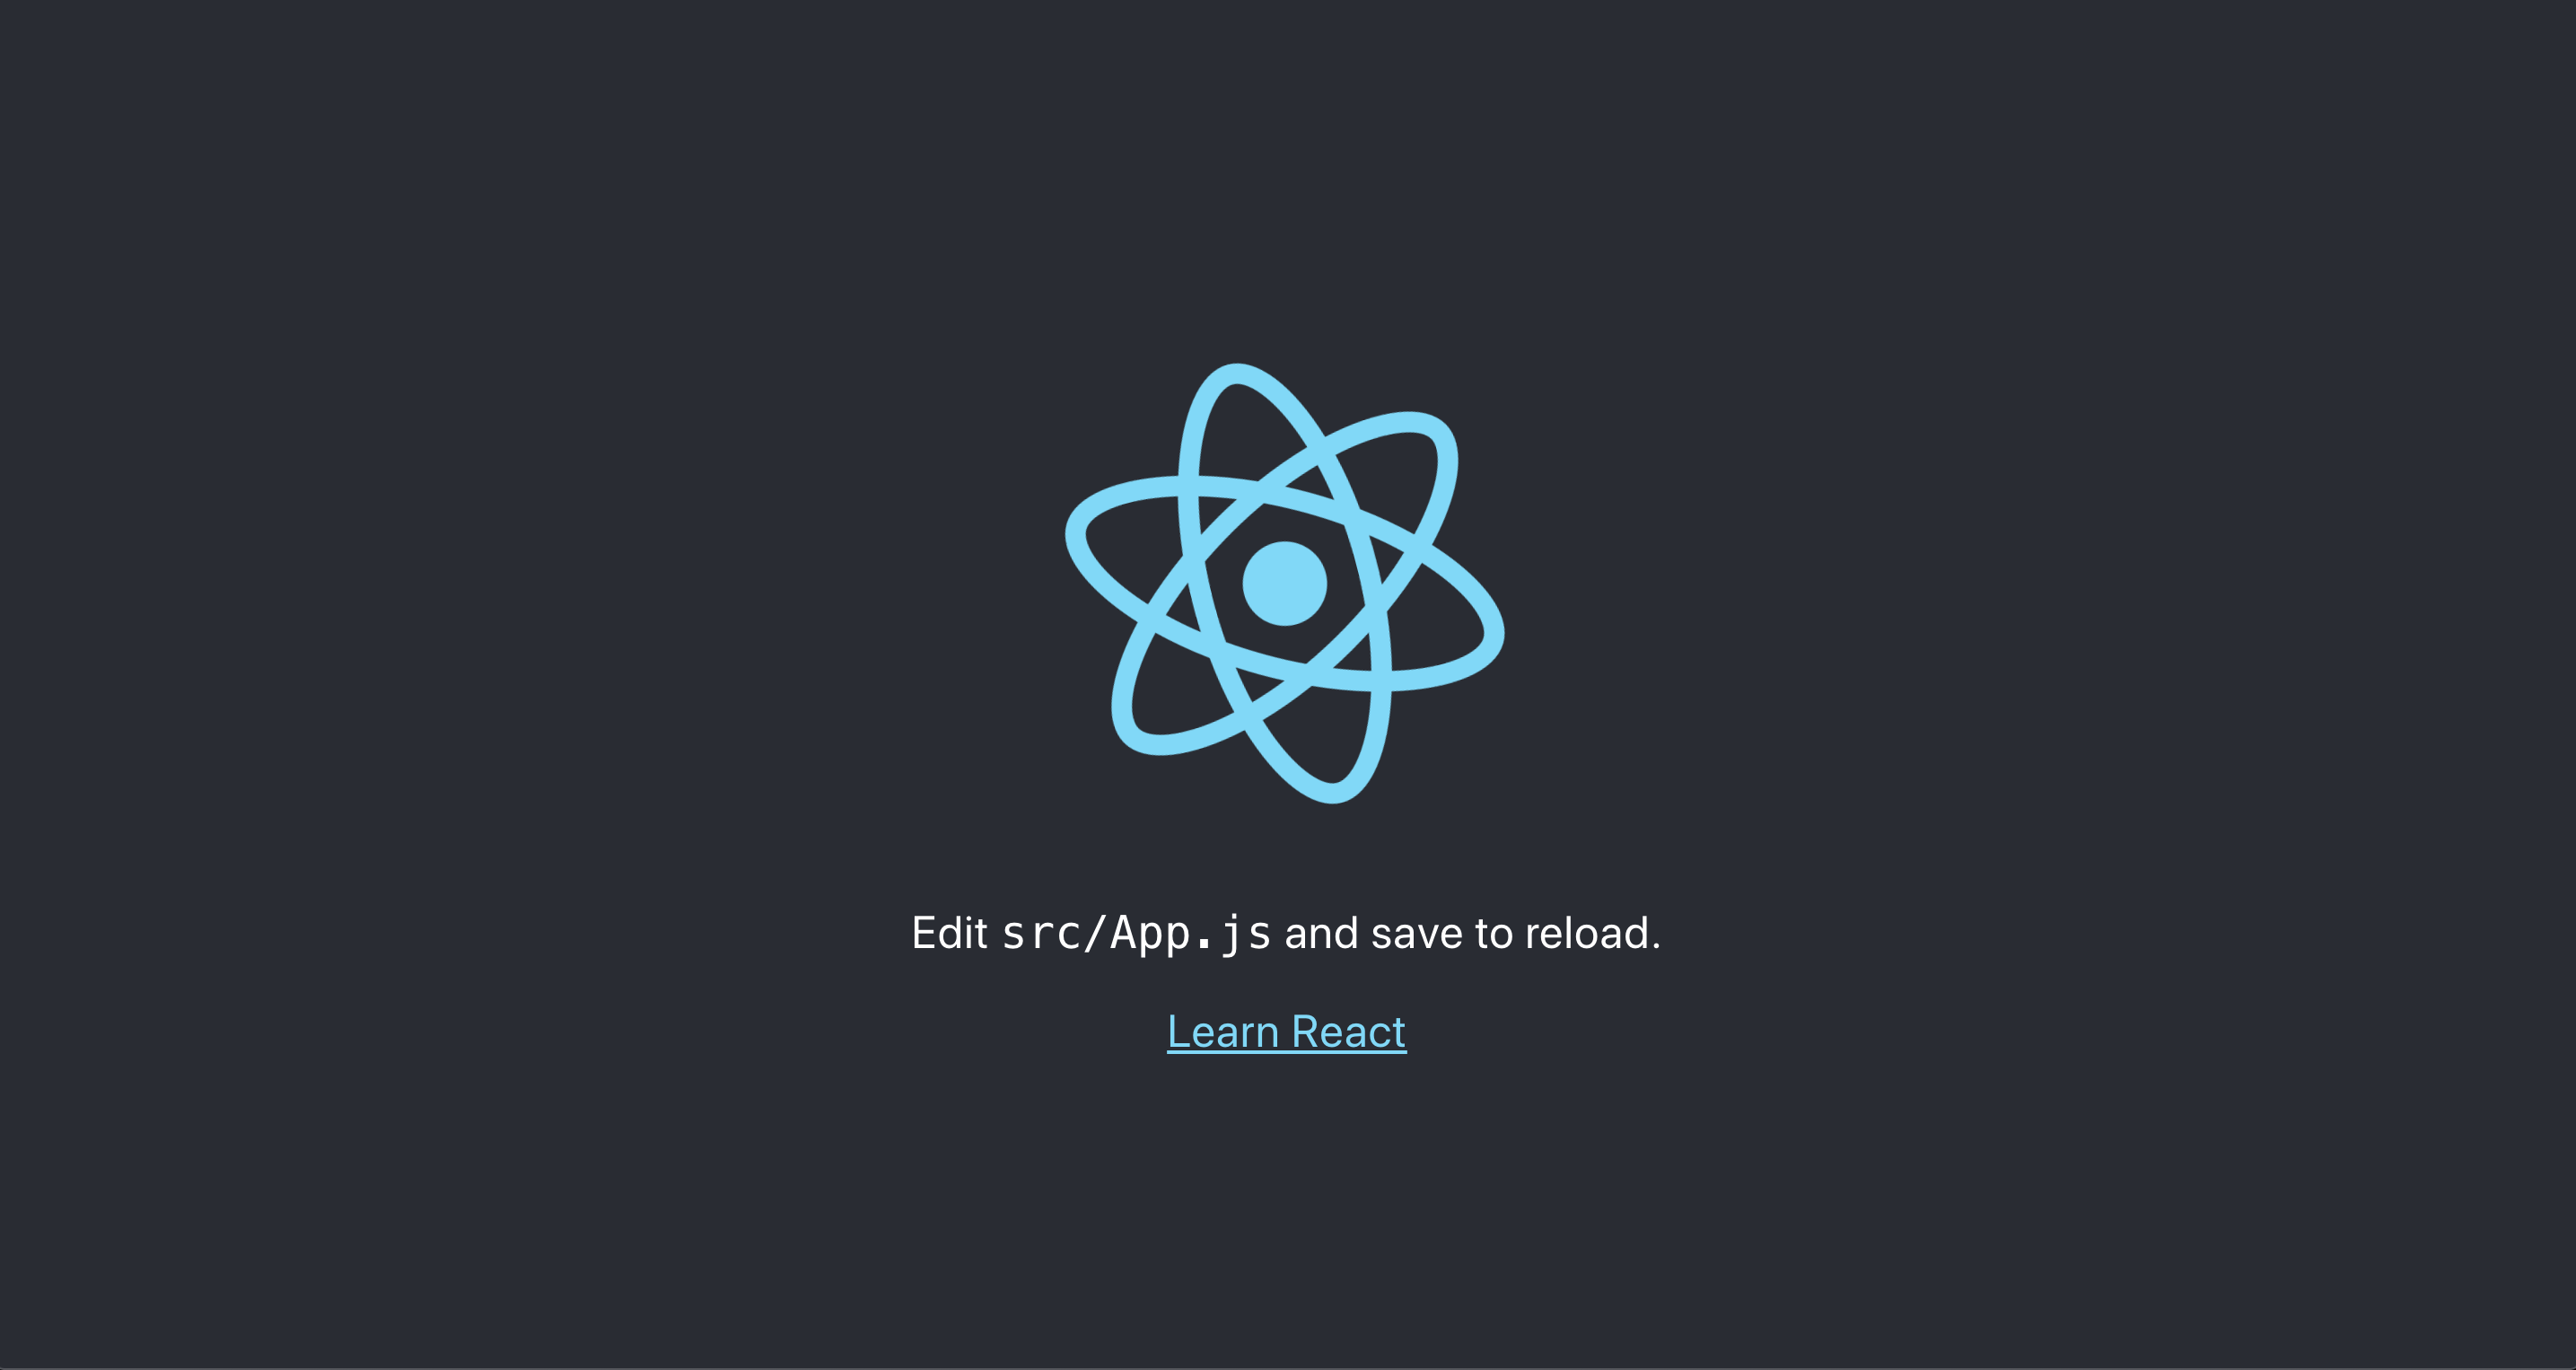 React app with dark background